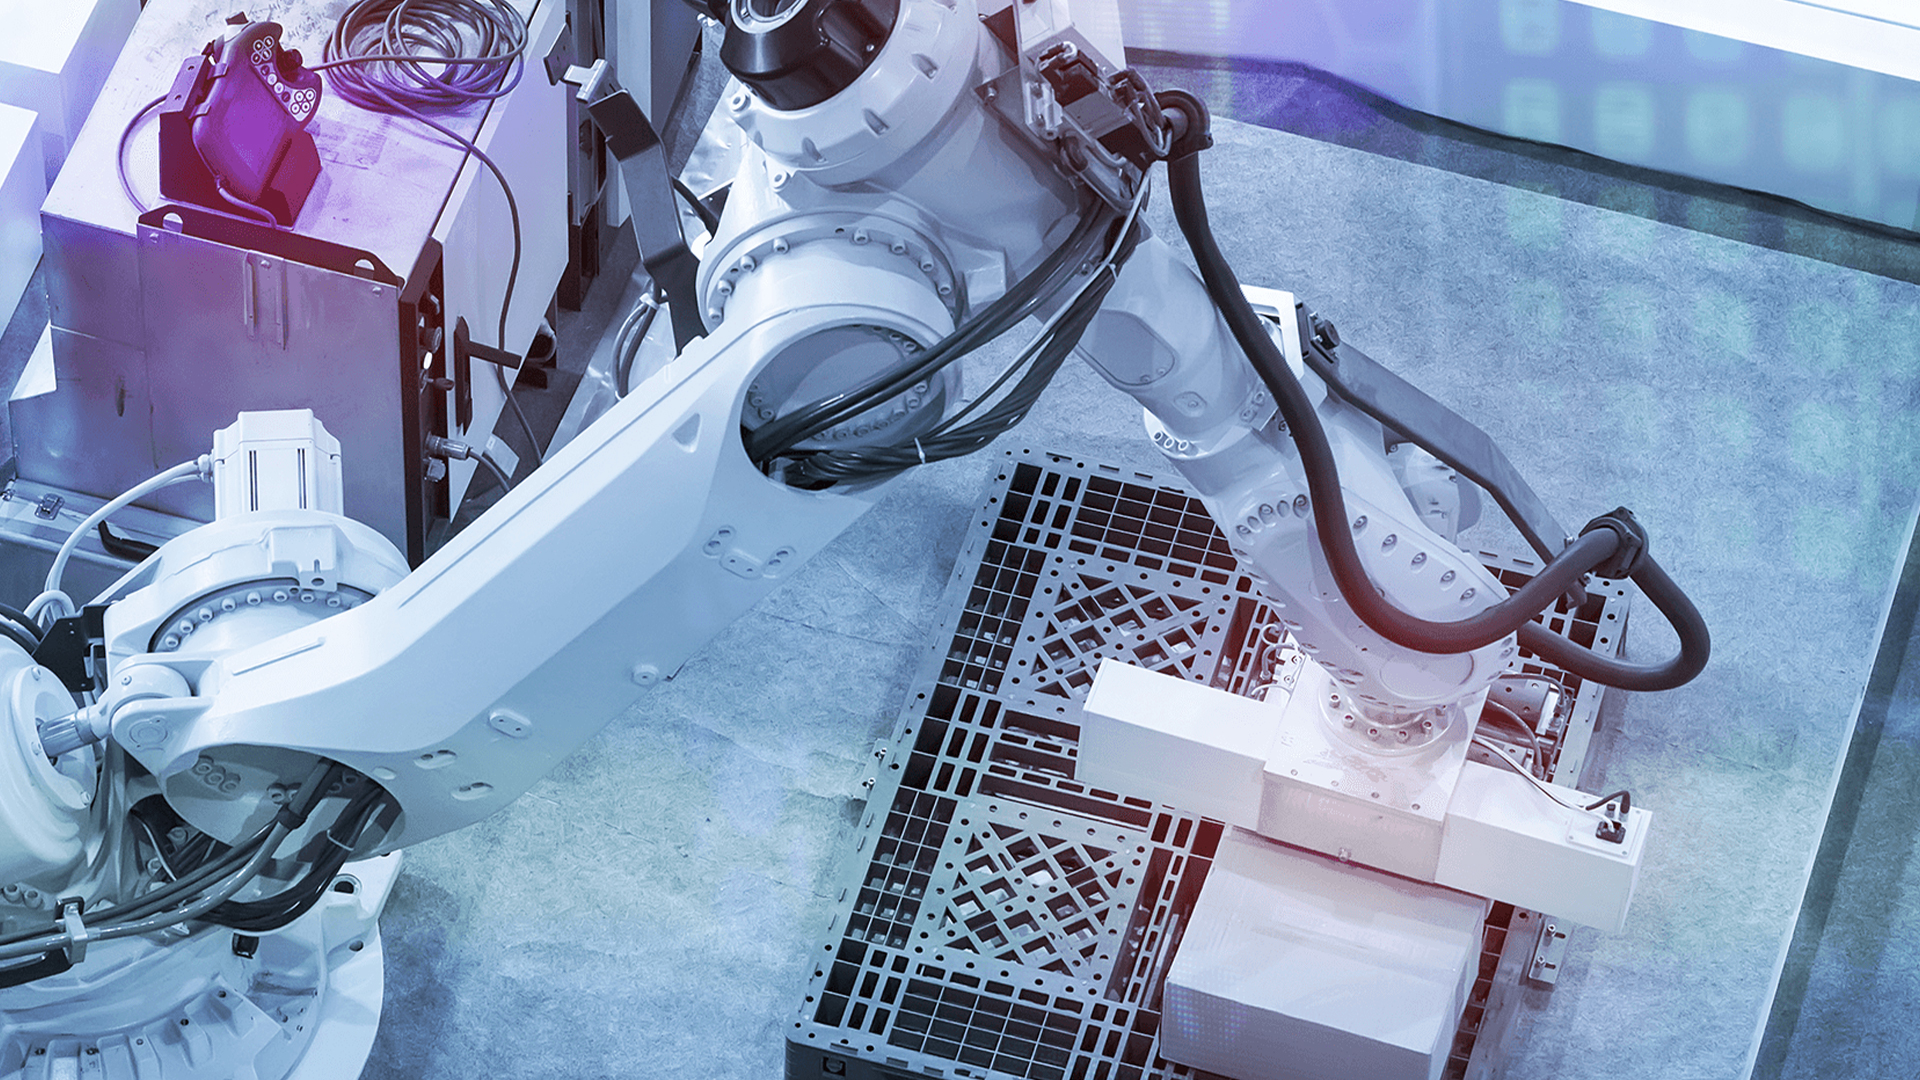 7 Inspirational Quotes on Industry 4.0